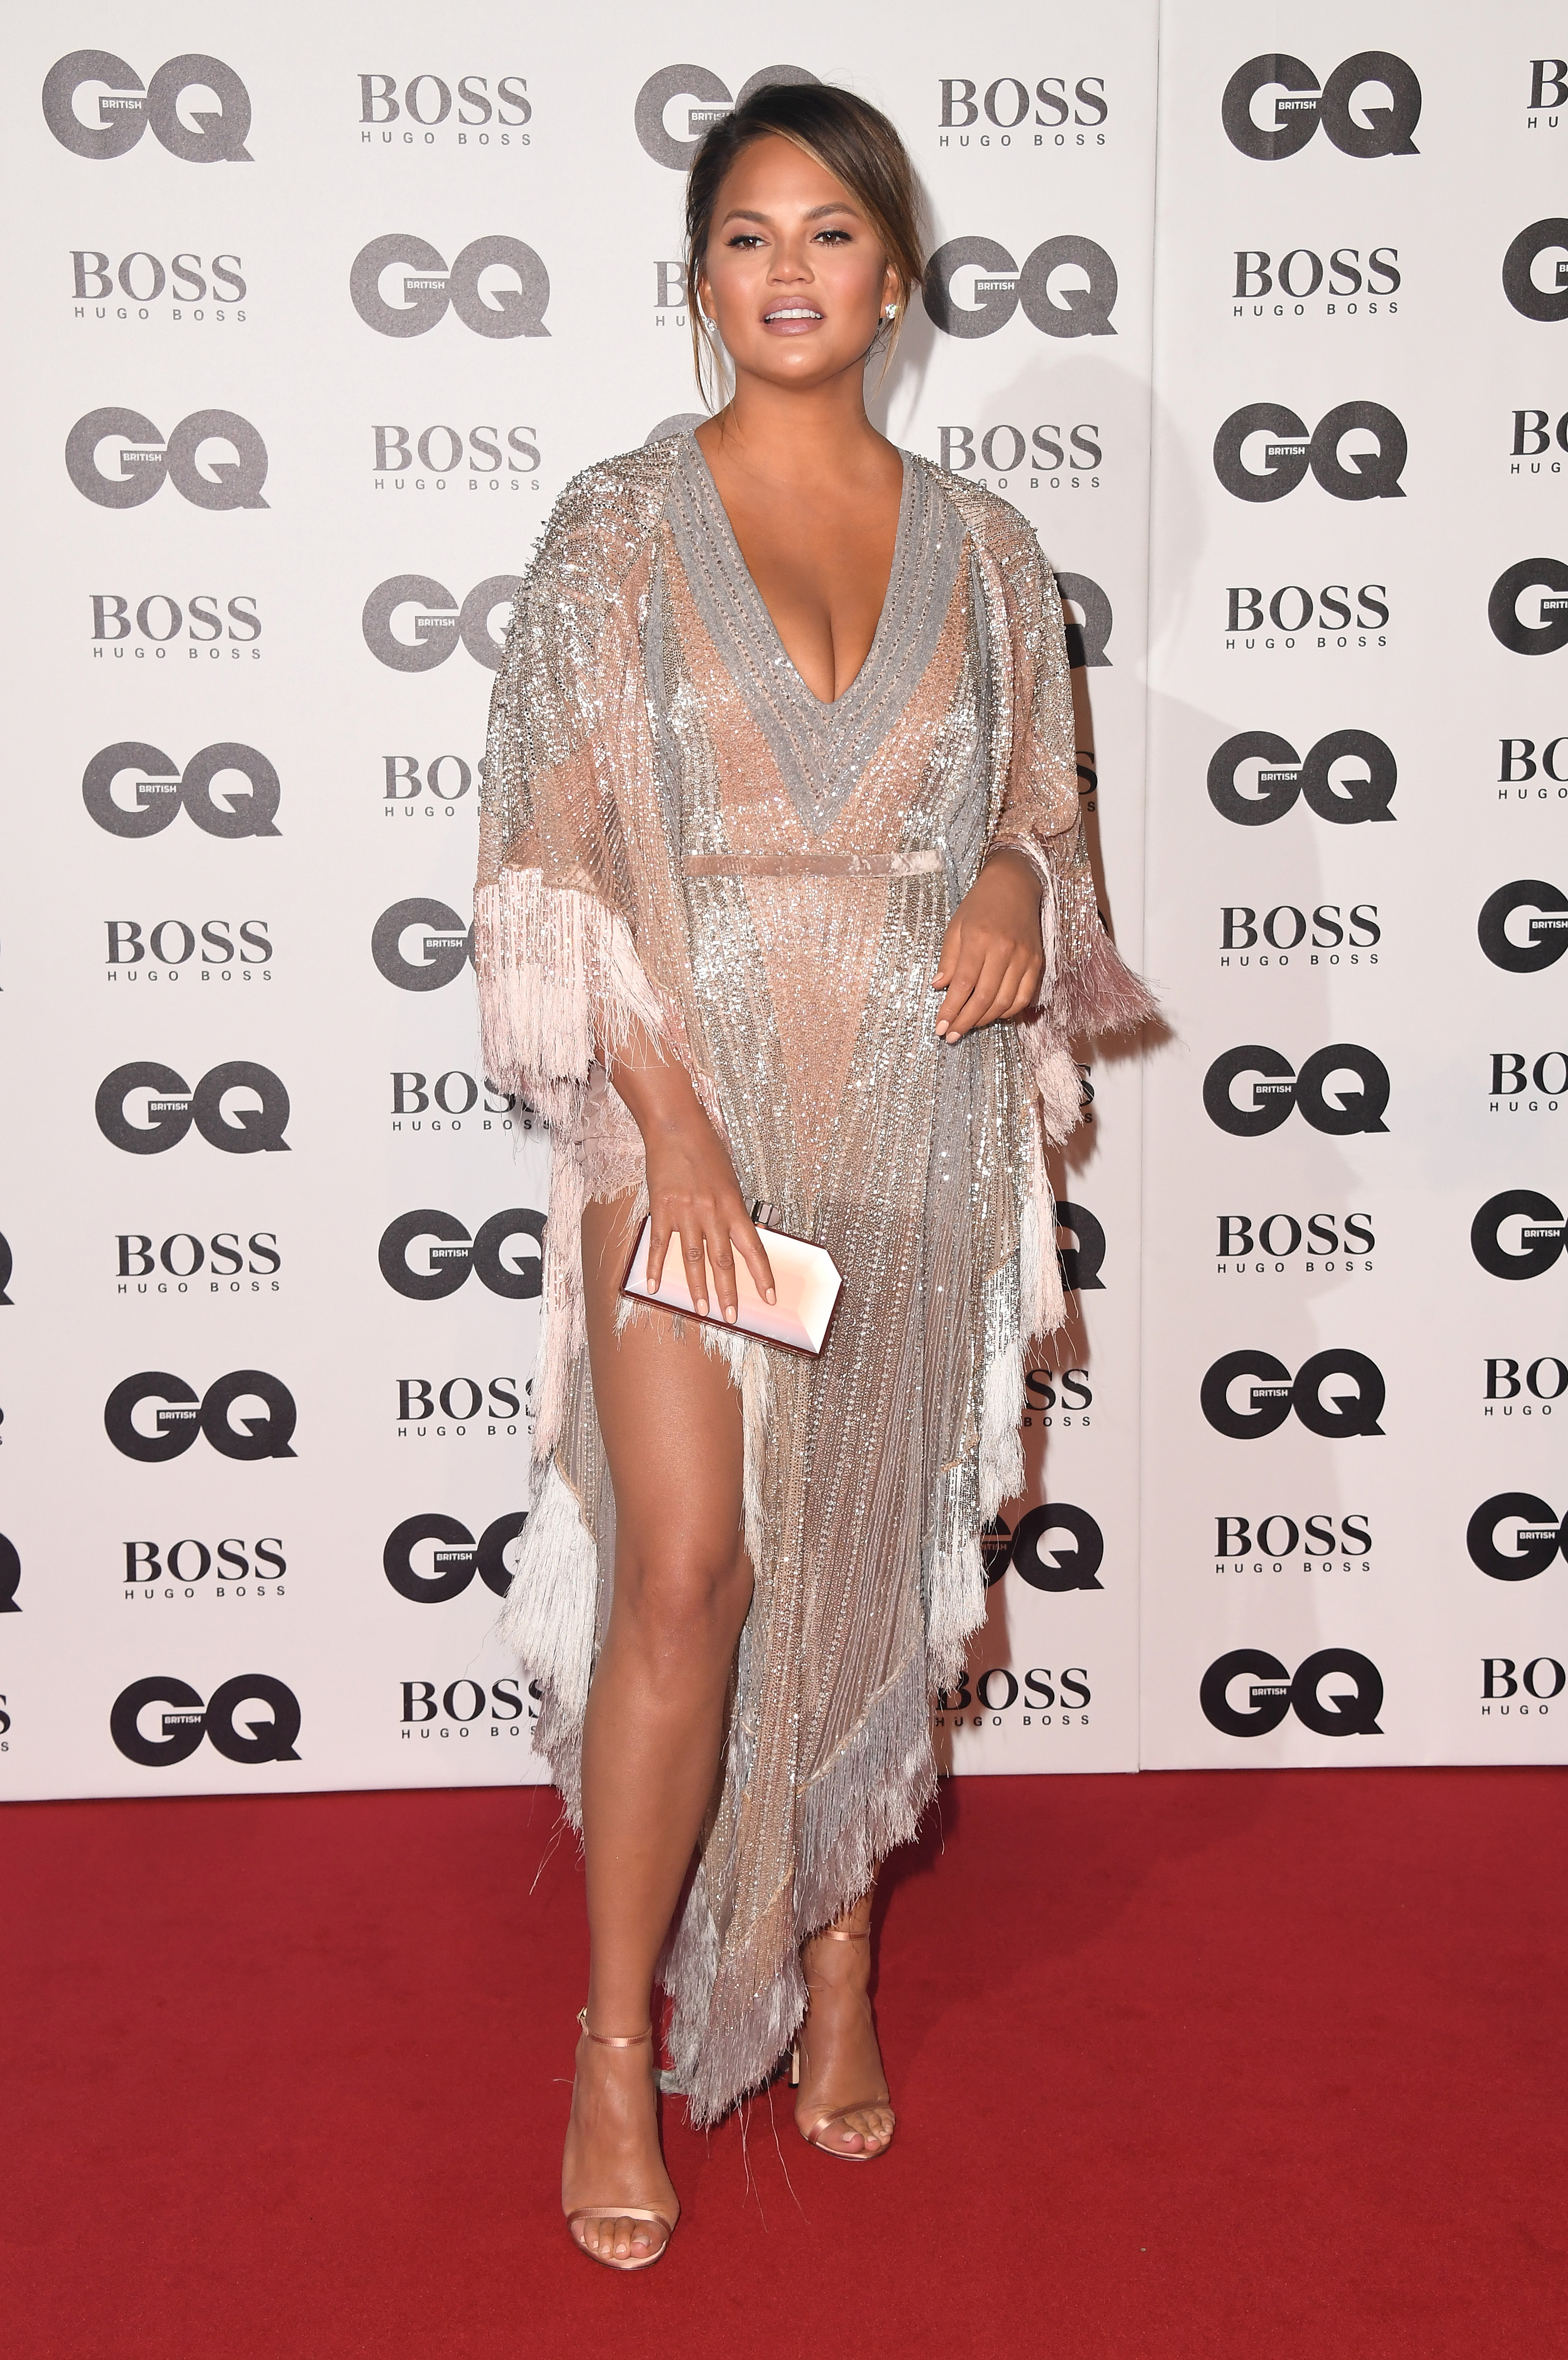 """<p>If you're looking for a good dose of glamour,  look no further than the 2018 GQ Awards<a href=""""https://style.nine.com.au/2018/08/30/10/34/venice-film-festival-fashion"""" target=""""_blank"""" title="""" red carpet"""" draggable=""""false""""> red carpet</a> at London's Tate Modern.</p> <p>The stars brought their A-game to the award show which honors both men and women who've influenced style, sport, politics and entertainment culture over the past 12 months.</p> <p>Model and author <a href=""""https://style.nine.com.au/2018/05/25/14/12/chrissy-teigen-pregnancy-style"""" target=""""_blank"""" title=""""Chrissy Teigen"""" draggable=""""false"""">Chrissy Teigen</a> hit all the right style notes in a tassled and sequinned floor length Bourjoisie x Lyla Dumont St. Barth dress. </p> <p>Meanwhile, actress Kate Bekinsale won the award for most daring dress of the night, turning heads in a revealing Julien Macdonald gown.</p> <p>Click through to take a look at all the standout looks from the star-studded event.</p>"""